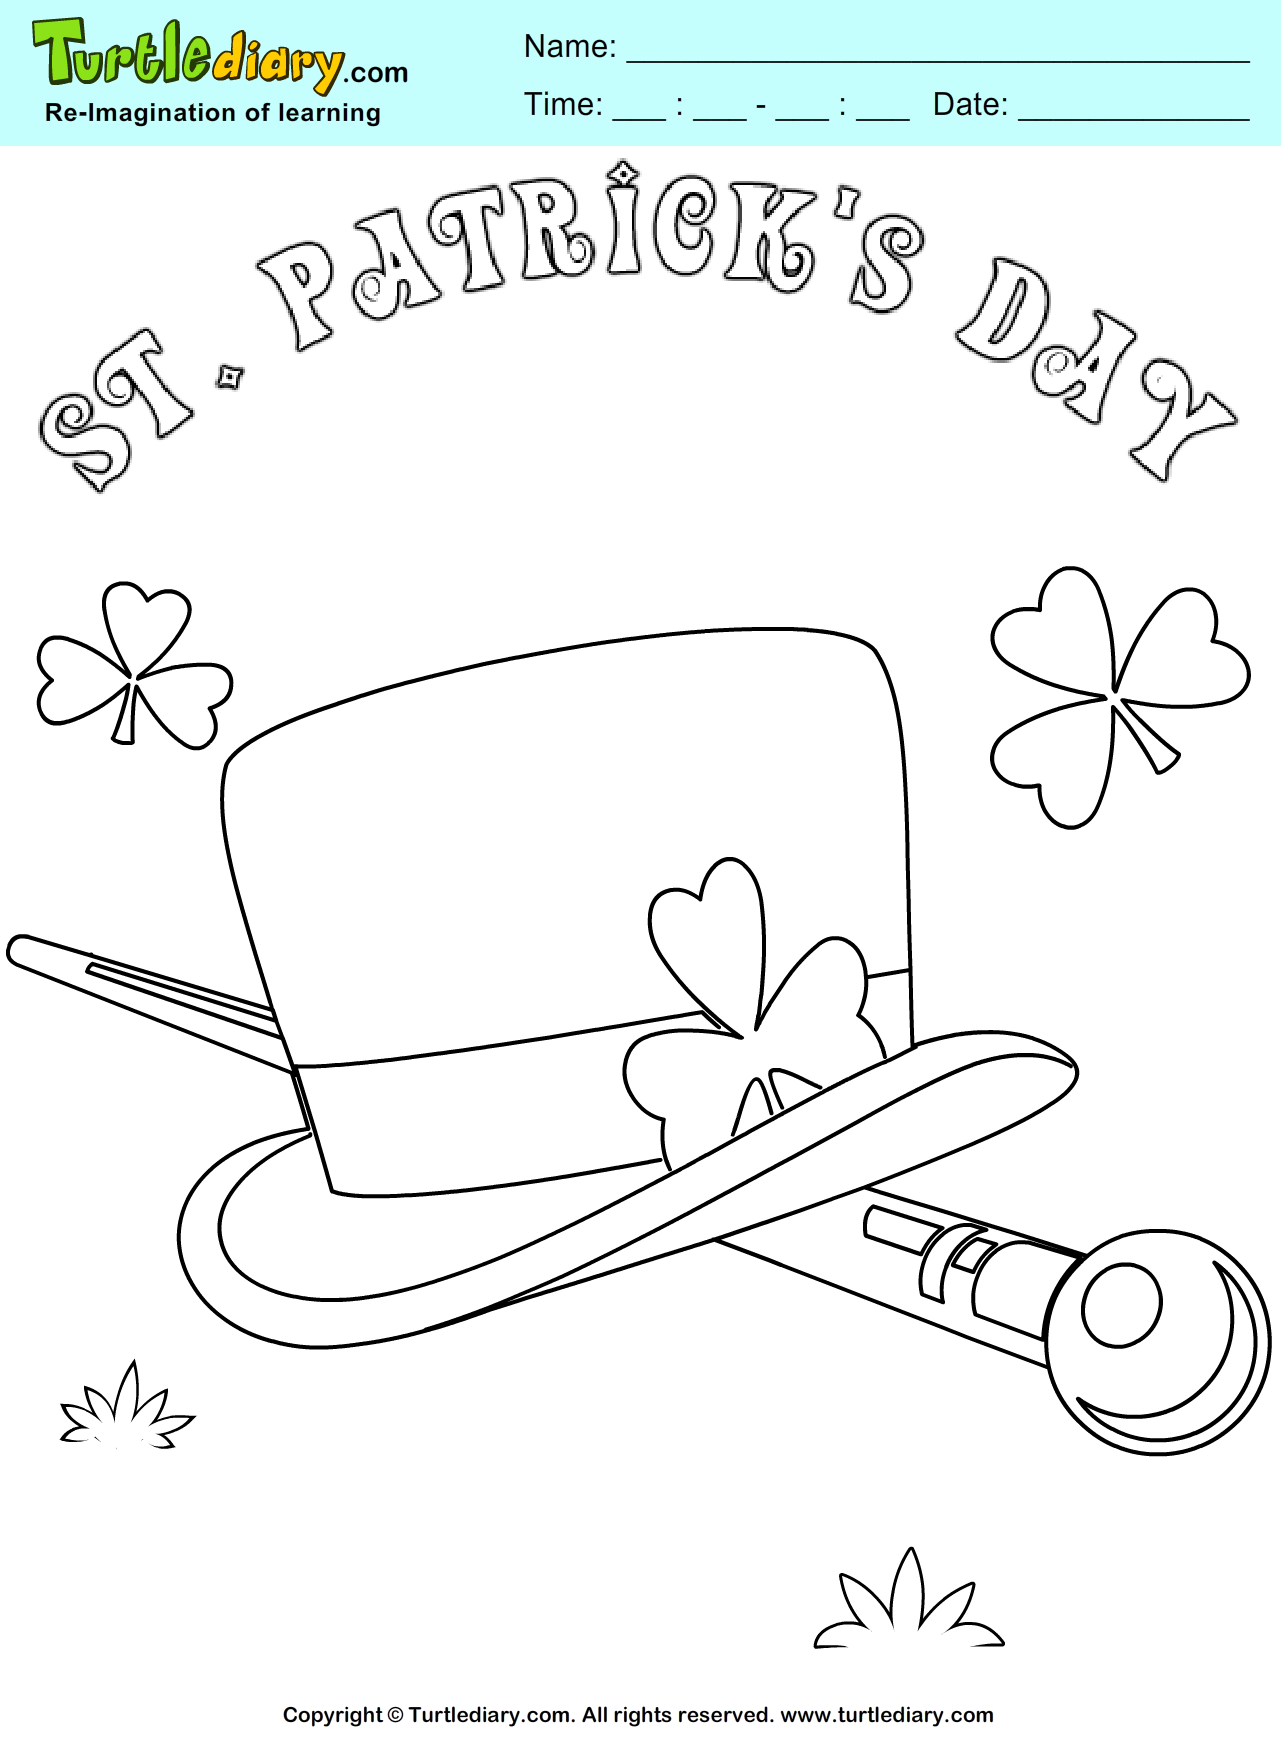 Leprechaun hat coloring sheet turtle diary for Leprechaun hat coloring page